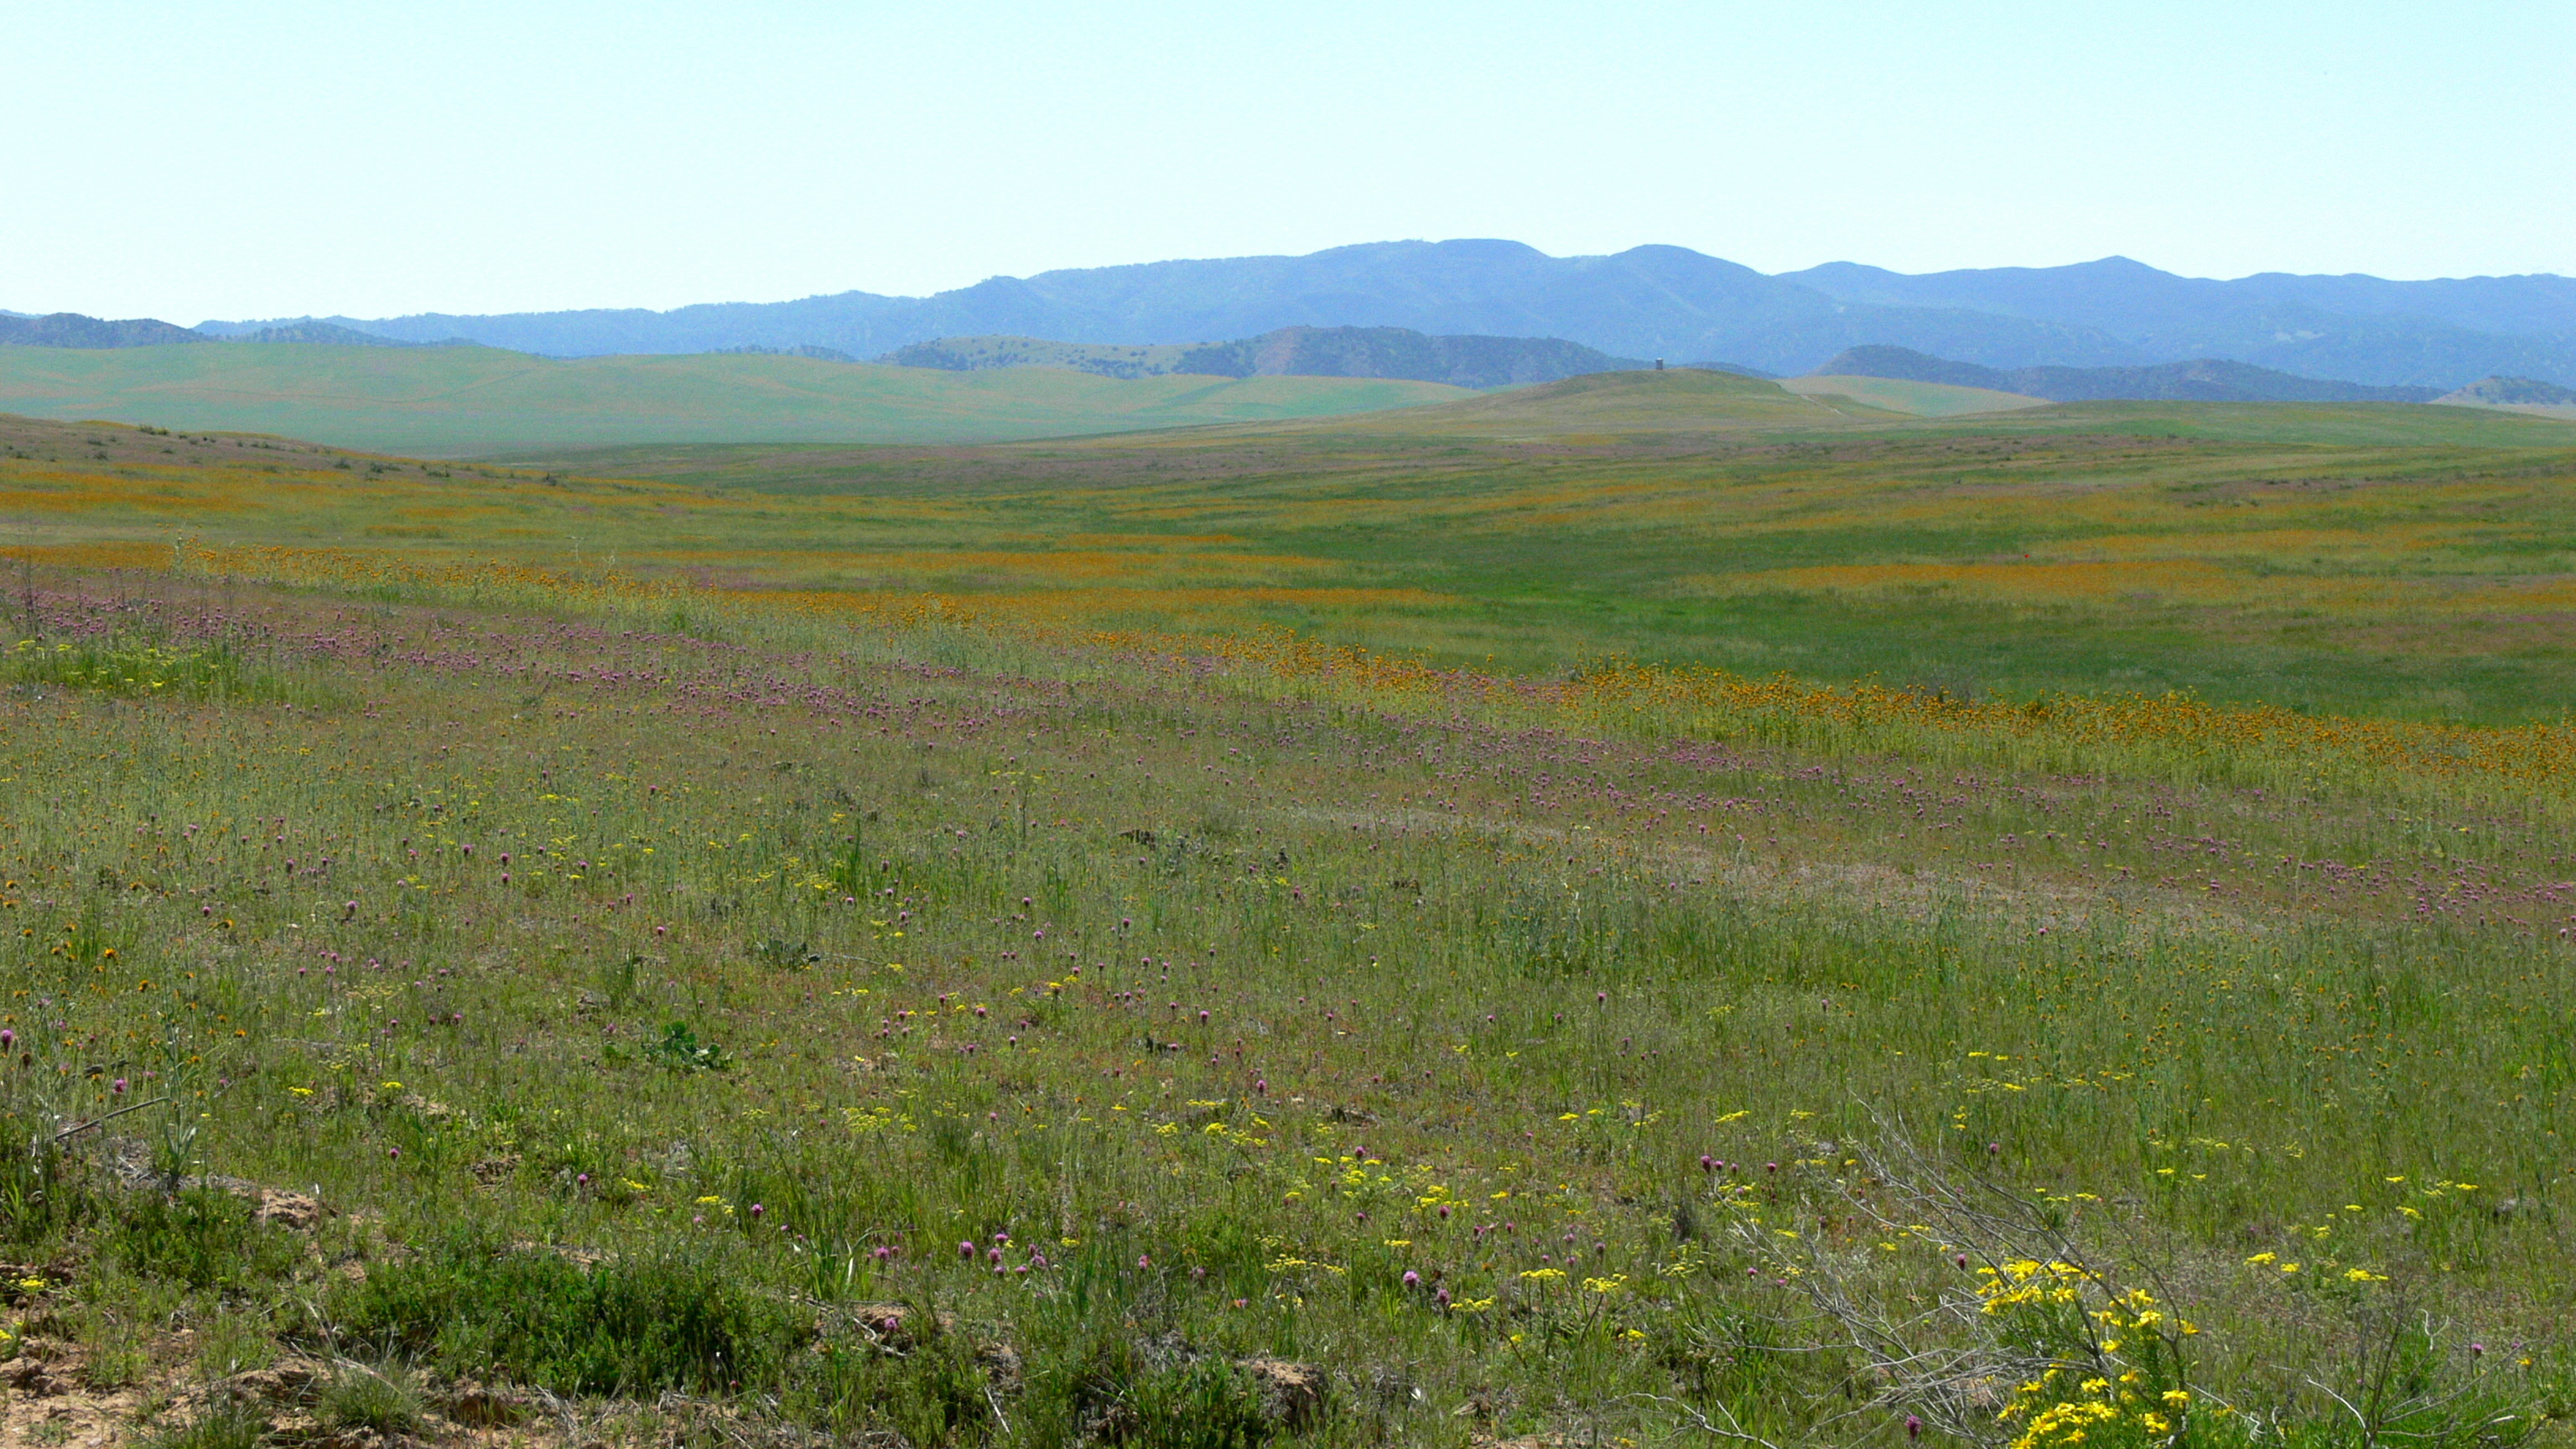 Description Carrizo plains, landscape with colorful wildflowers.jpg